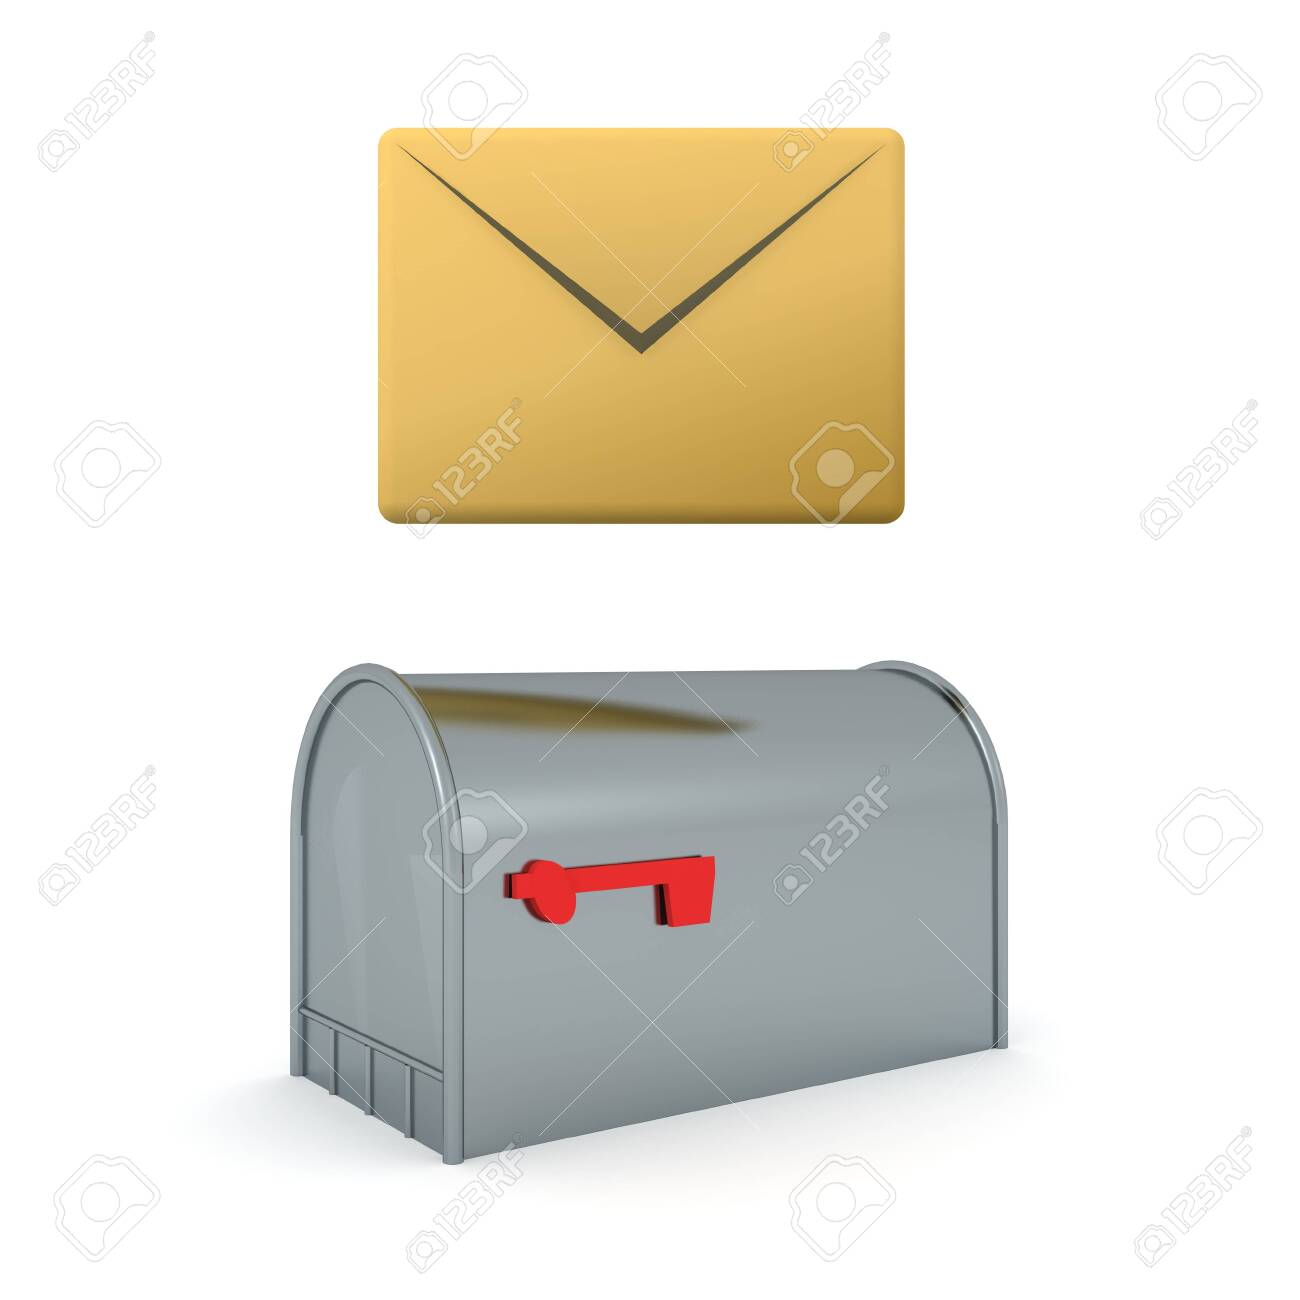 3d rendering of envelope